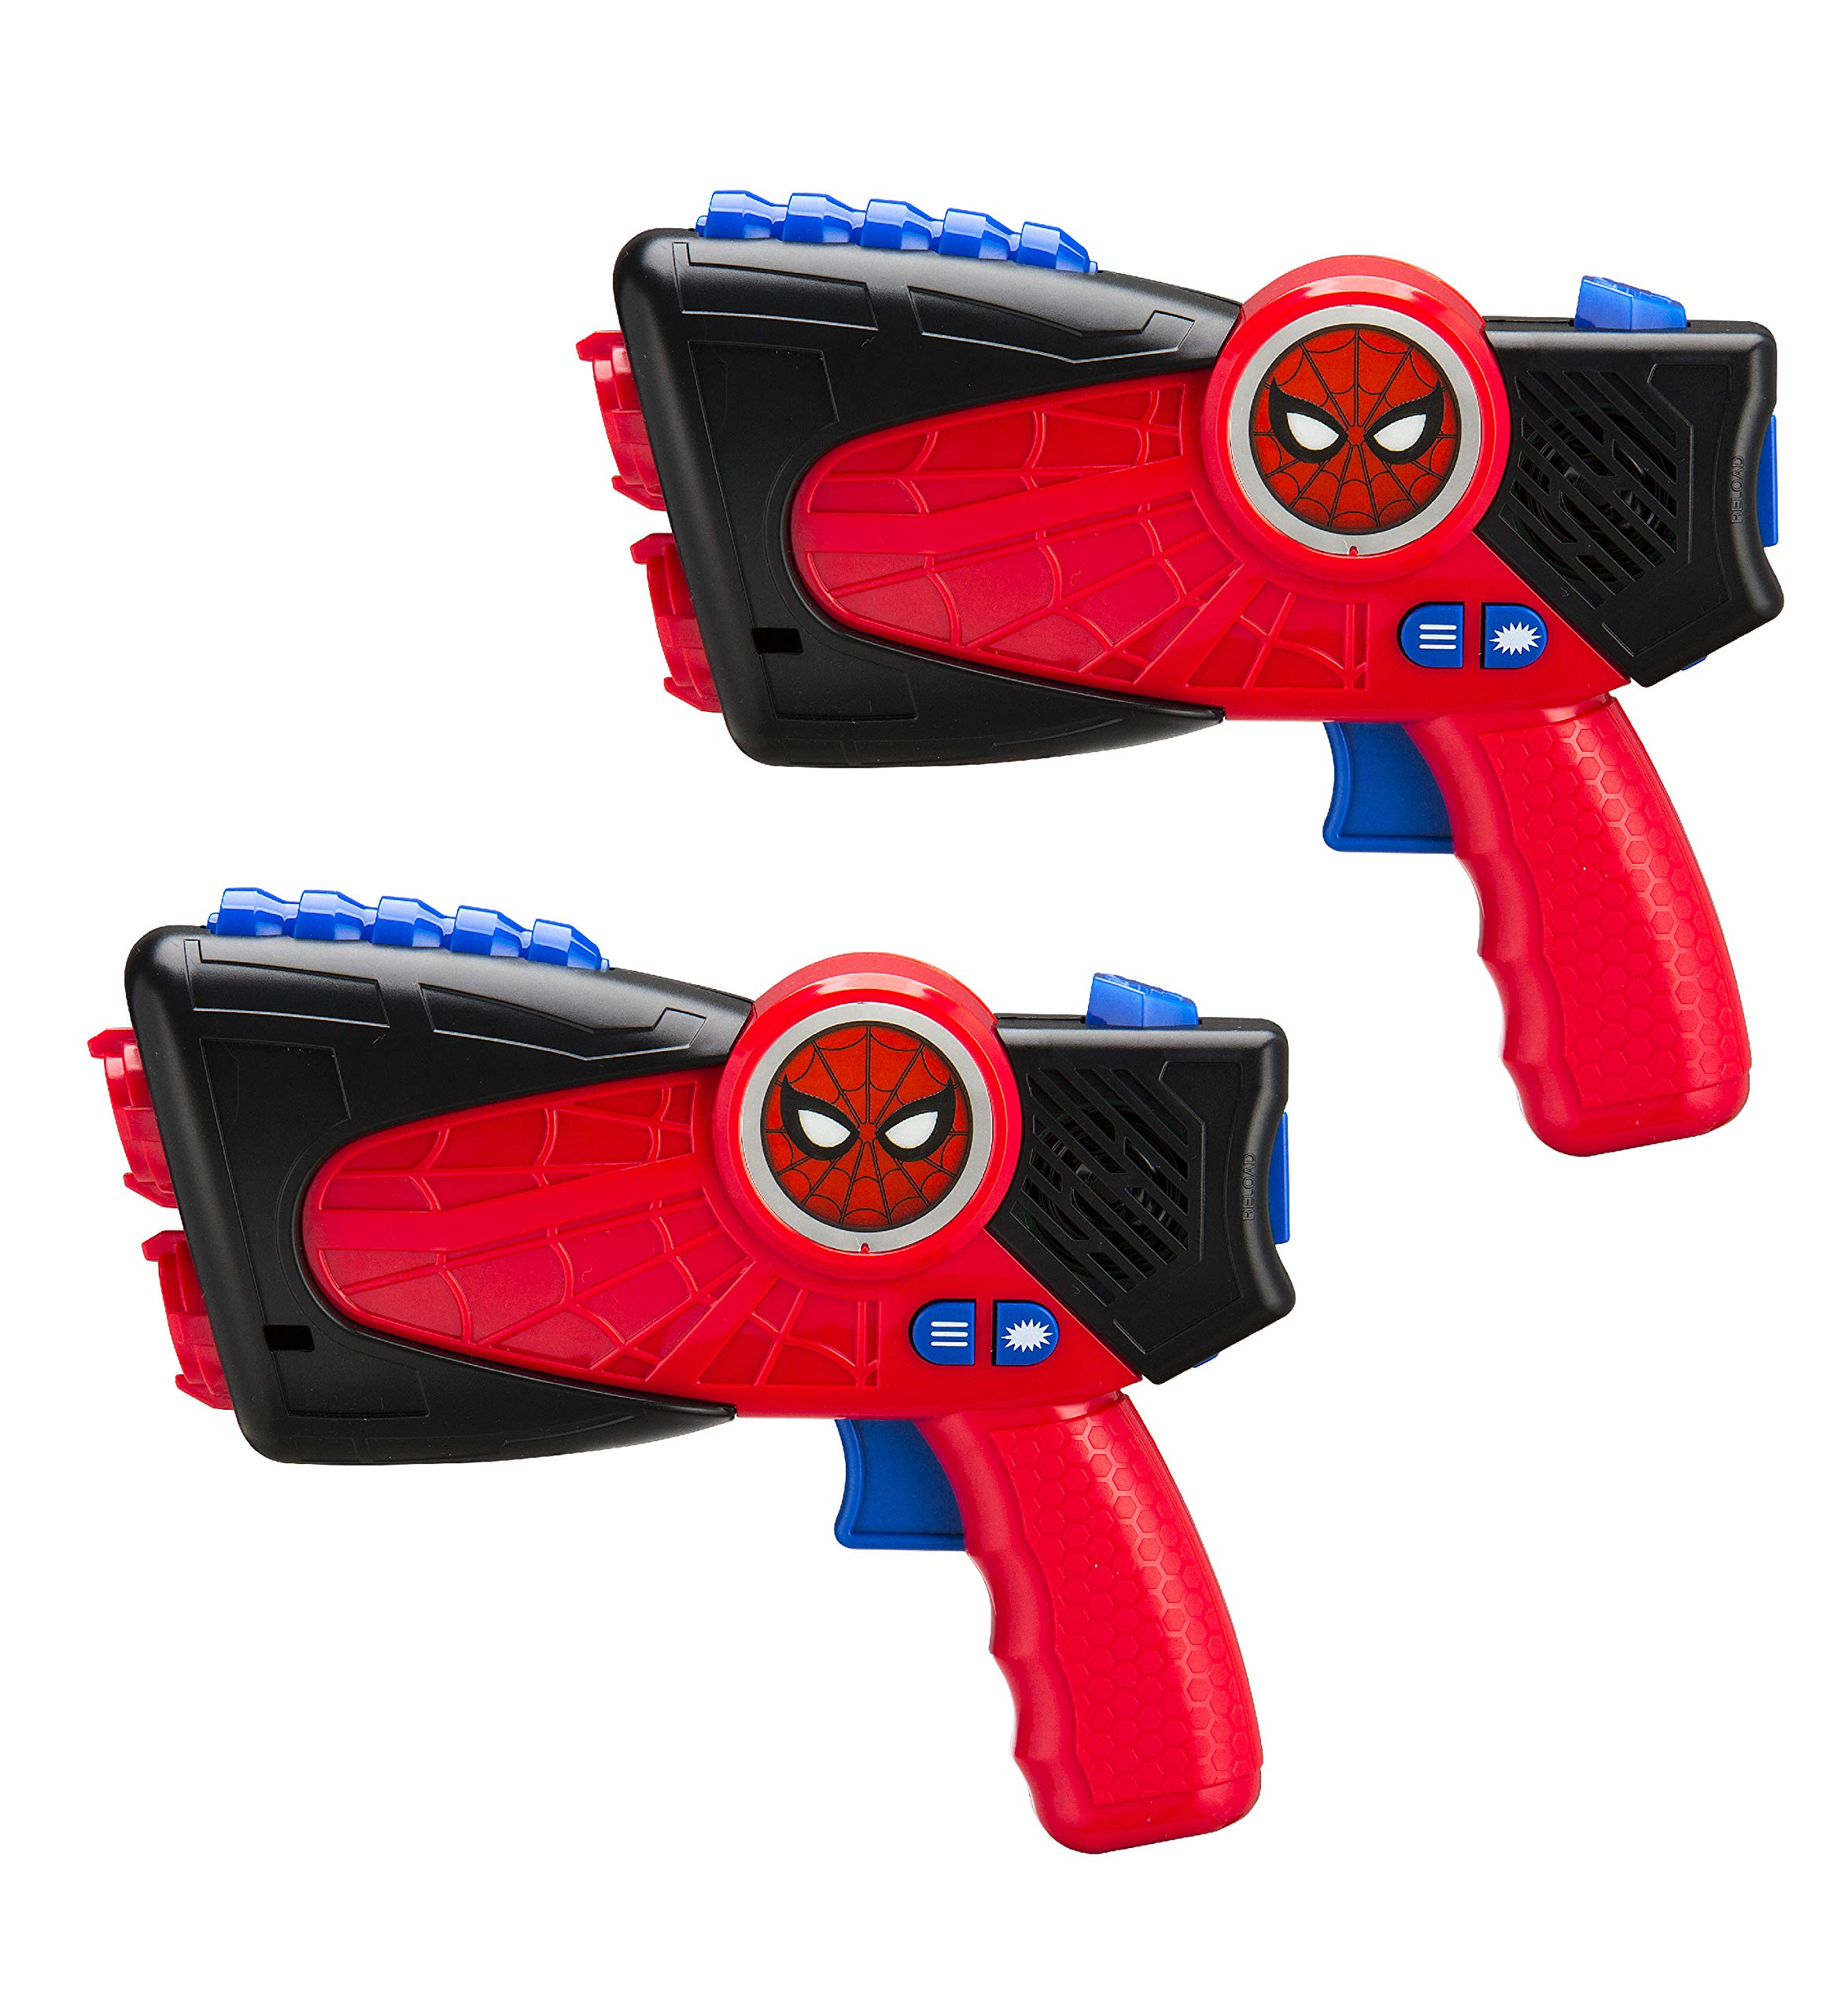 Spiderman Far from Home Laser-Tag for Kids Infared Lazer-Tag Blasters Lights Up & Vibrates When Hit by eKids (Image #1)